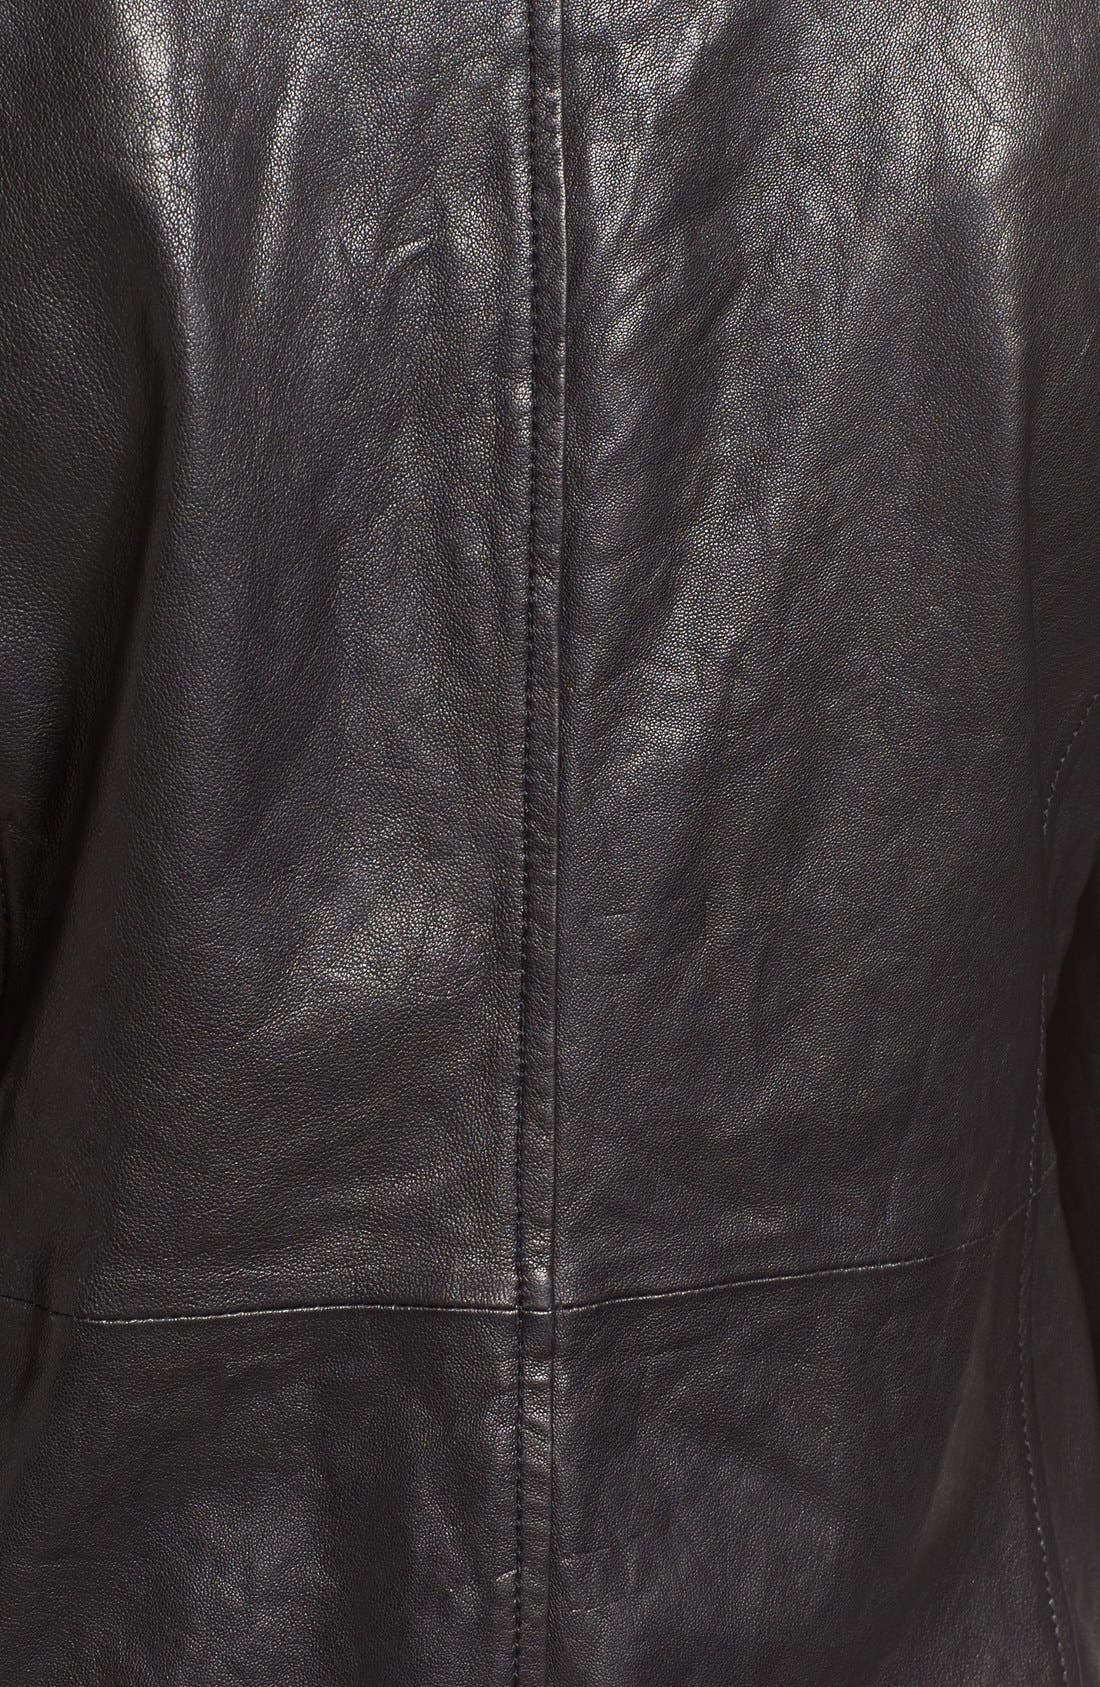 Rumpled Luxe Leather Stand Collar Jacket,                             Alternate thumbnail 4, color,                             001